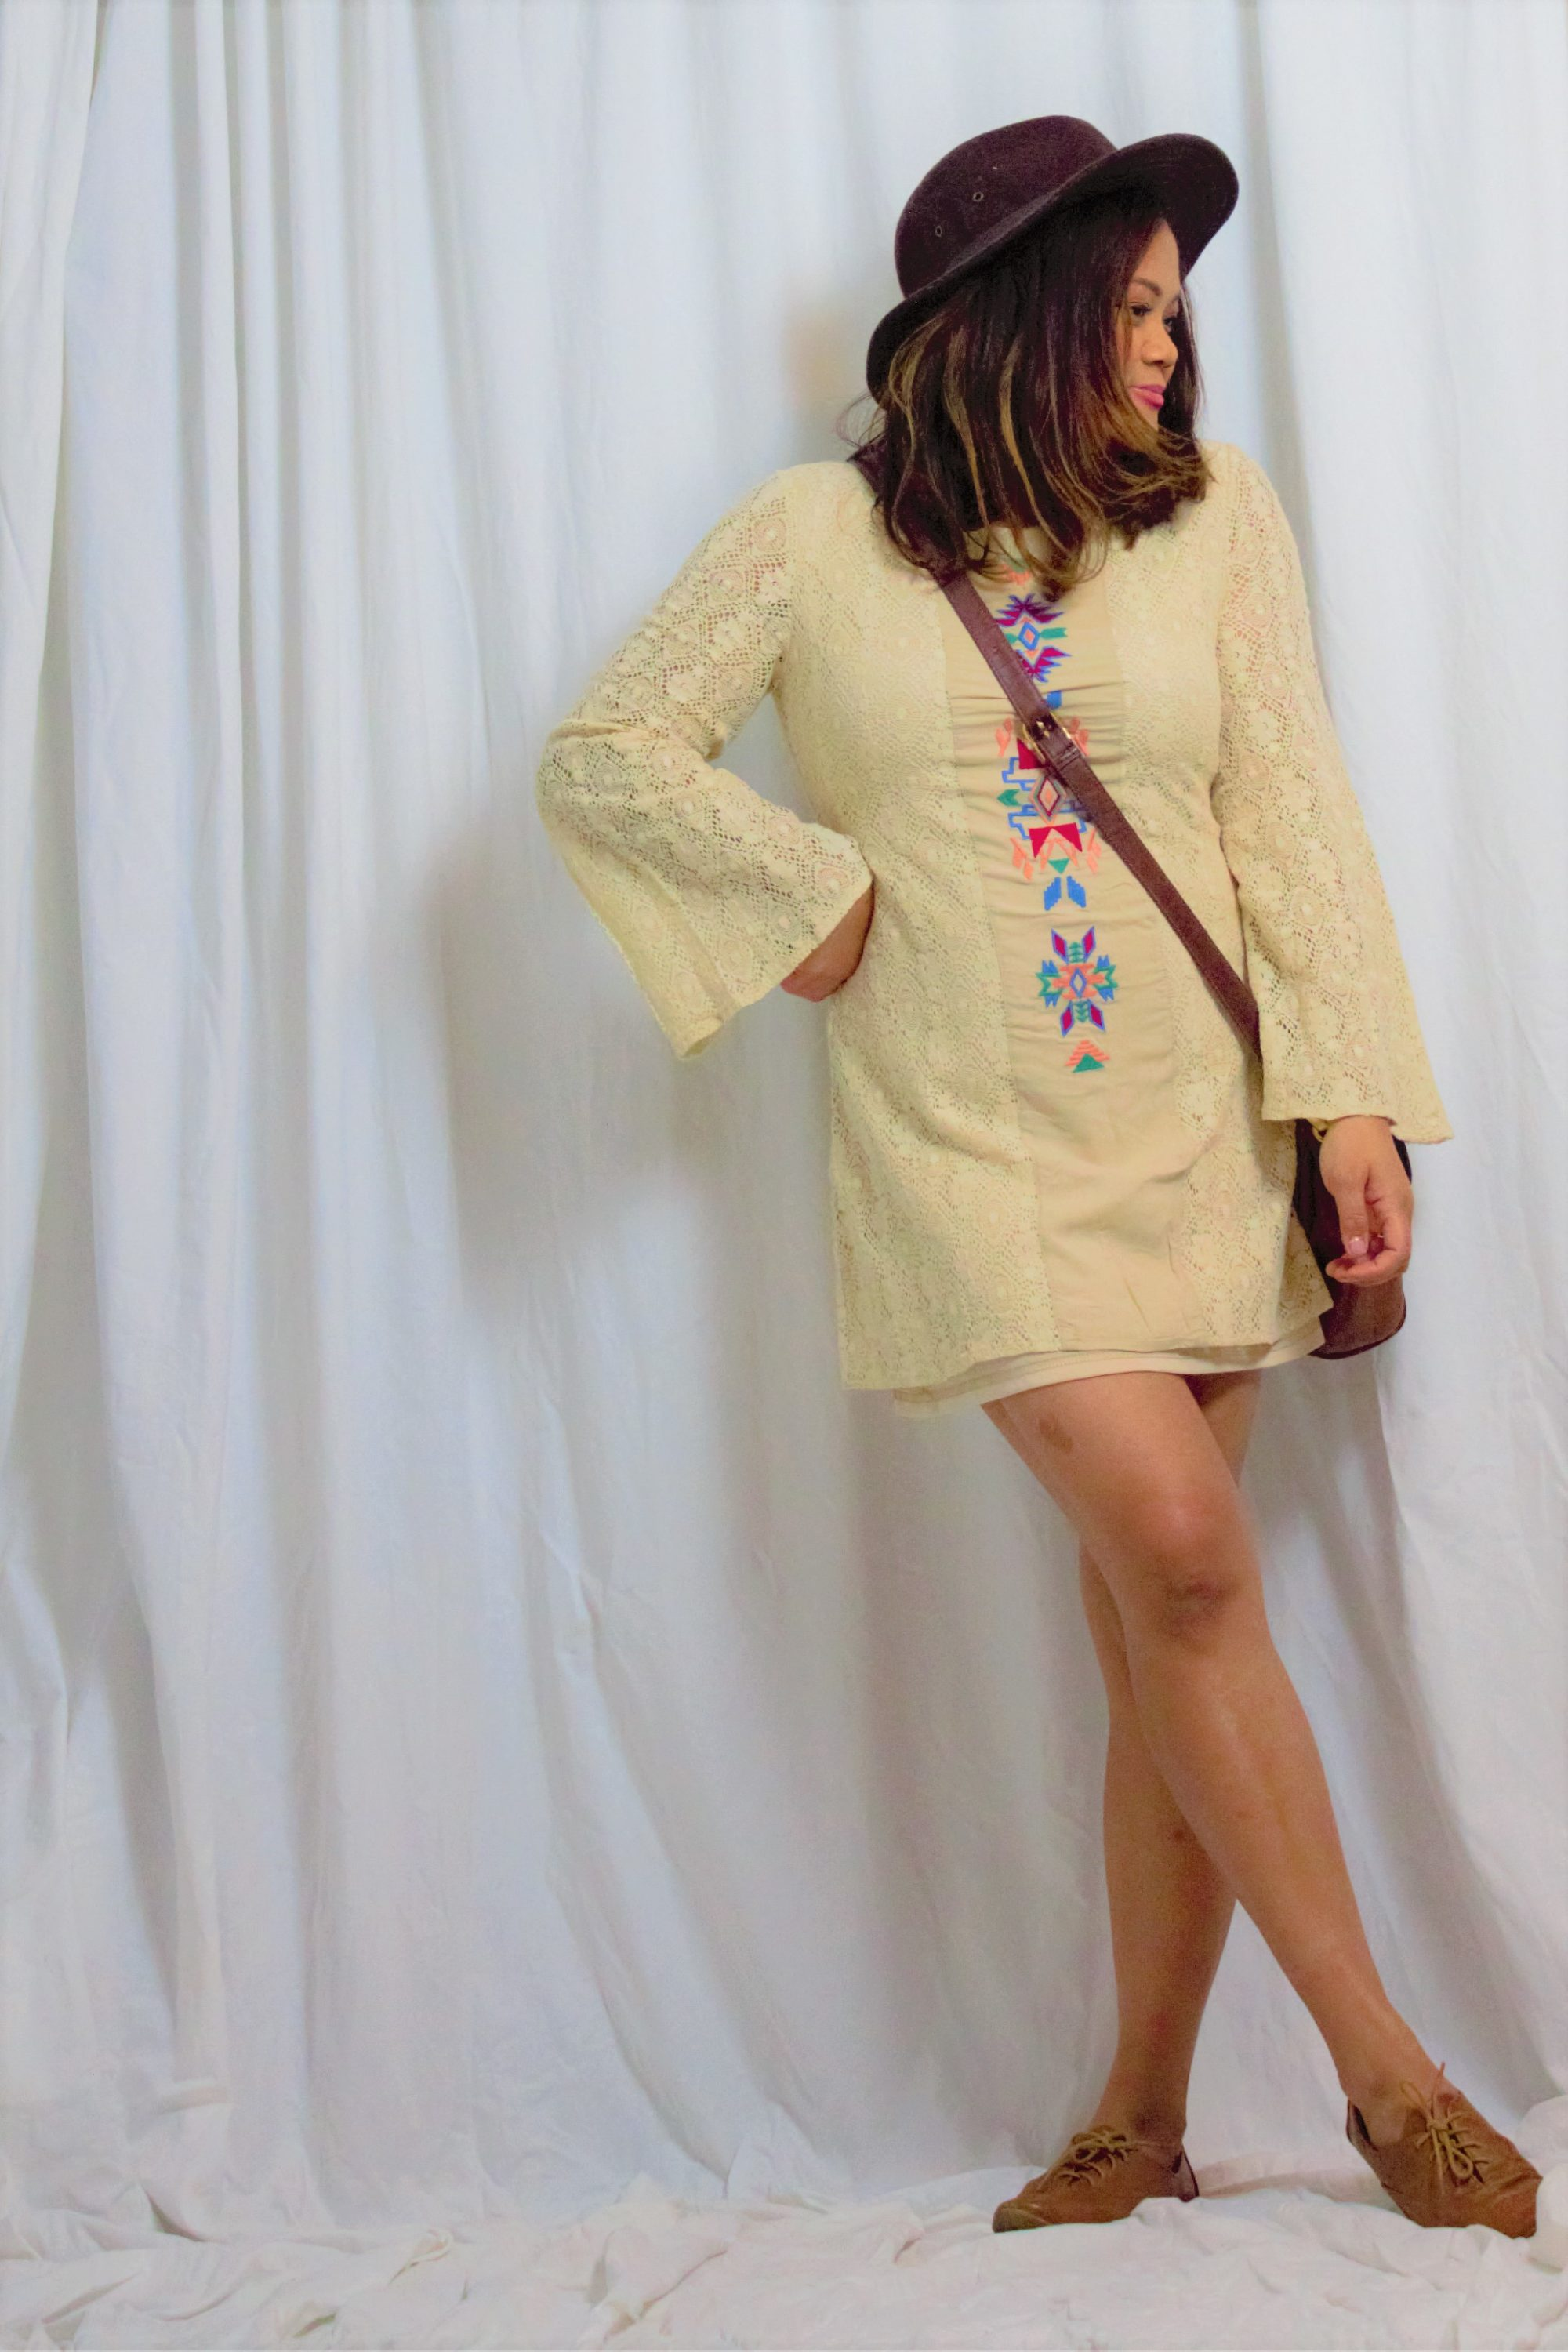 The Apple Shape Wardrobe: An Idea for What to Wear to an Outdoor Concert